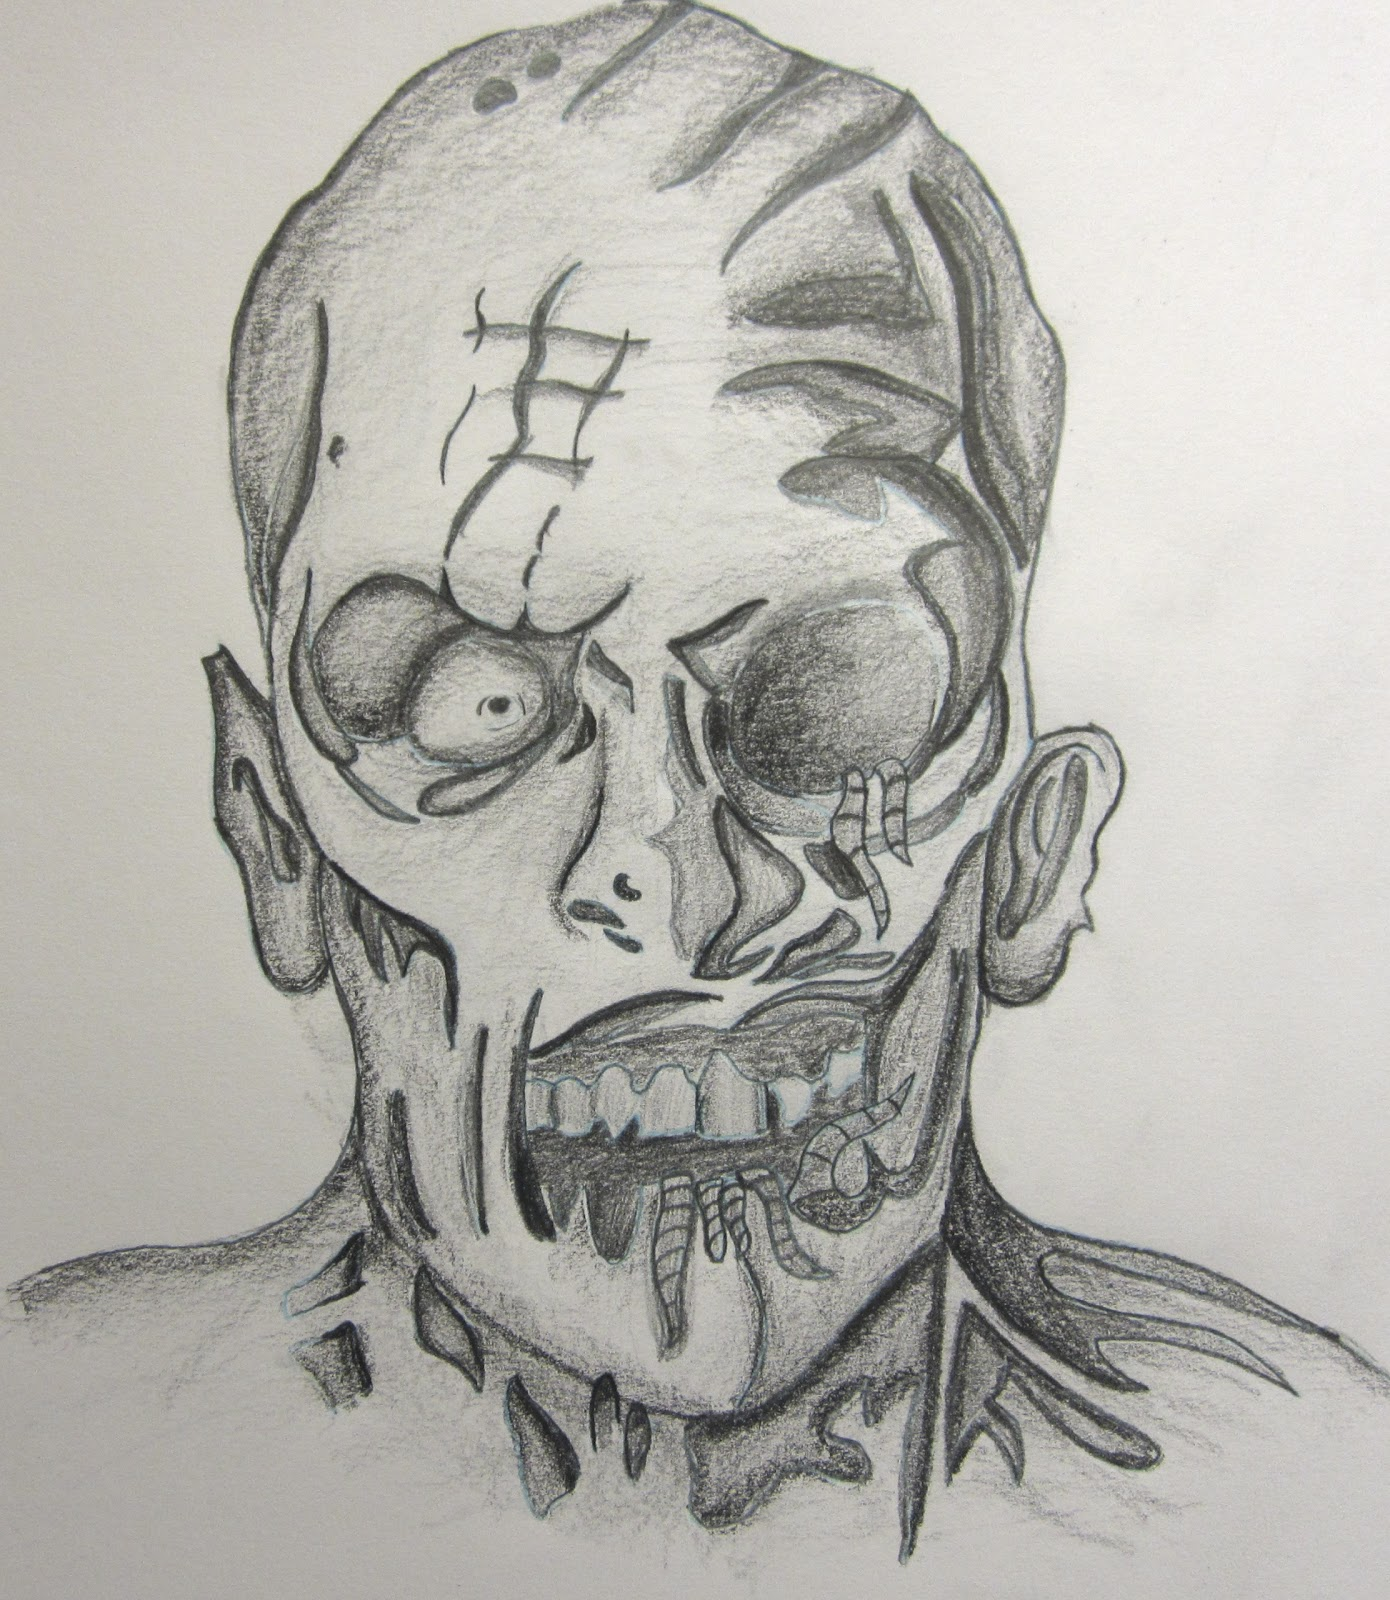 How To Draw A Simple Zombie Face Jpg 1390x1600 Realisim Zombie Face Drawings